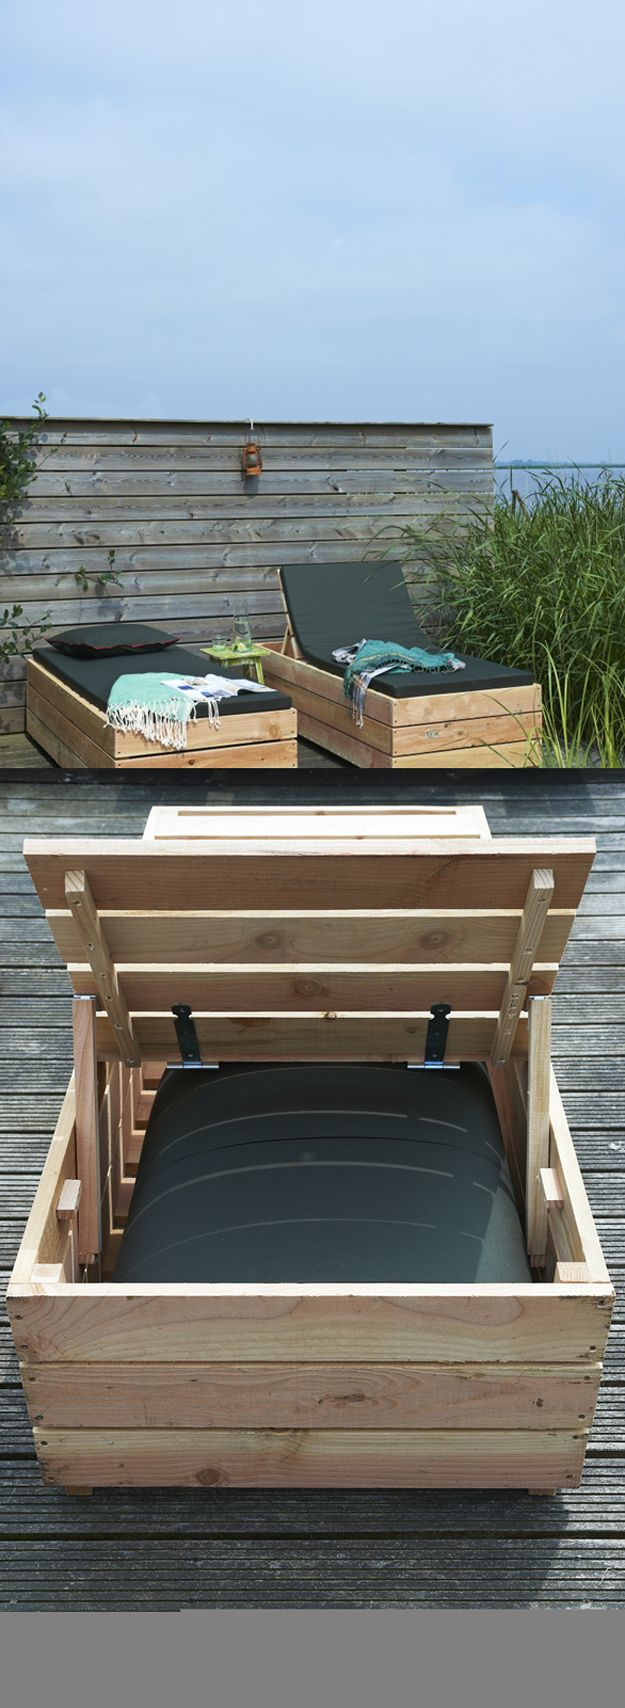 best  homemade outdoor furniture ideas on pinterest  outdoor  - diy outdoor pallet furniture projects diy projects  creative crafts – howto make everything homemade  diy projects  creative crafts – how to make